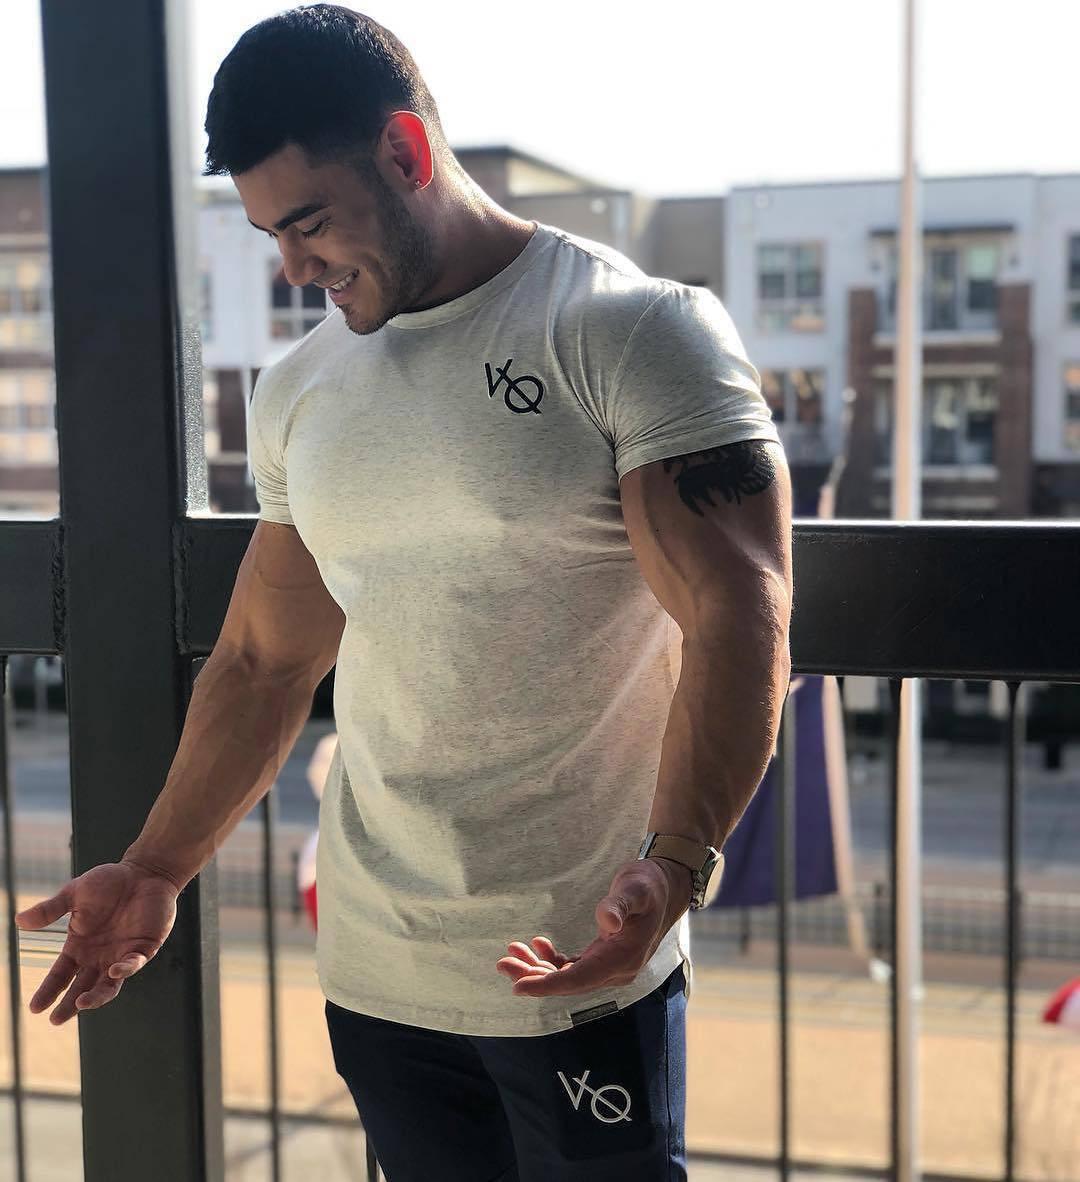 Muscle Dr. Brother 2018 Summer New Style Athletic T-shirt Fitness Running Fitness Casual Short Sleeved Shorts Suit